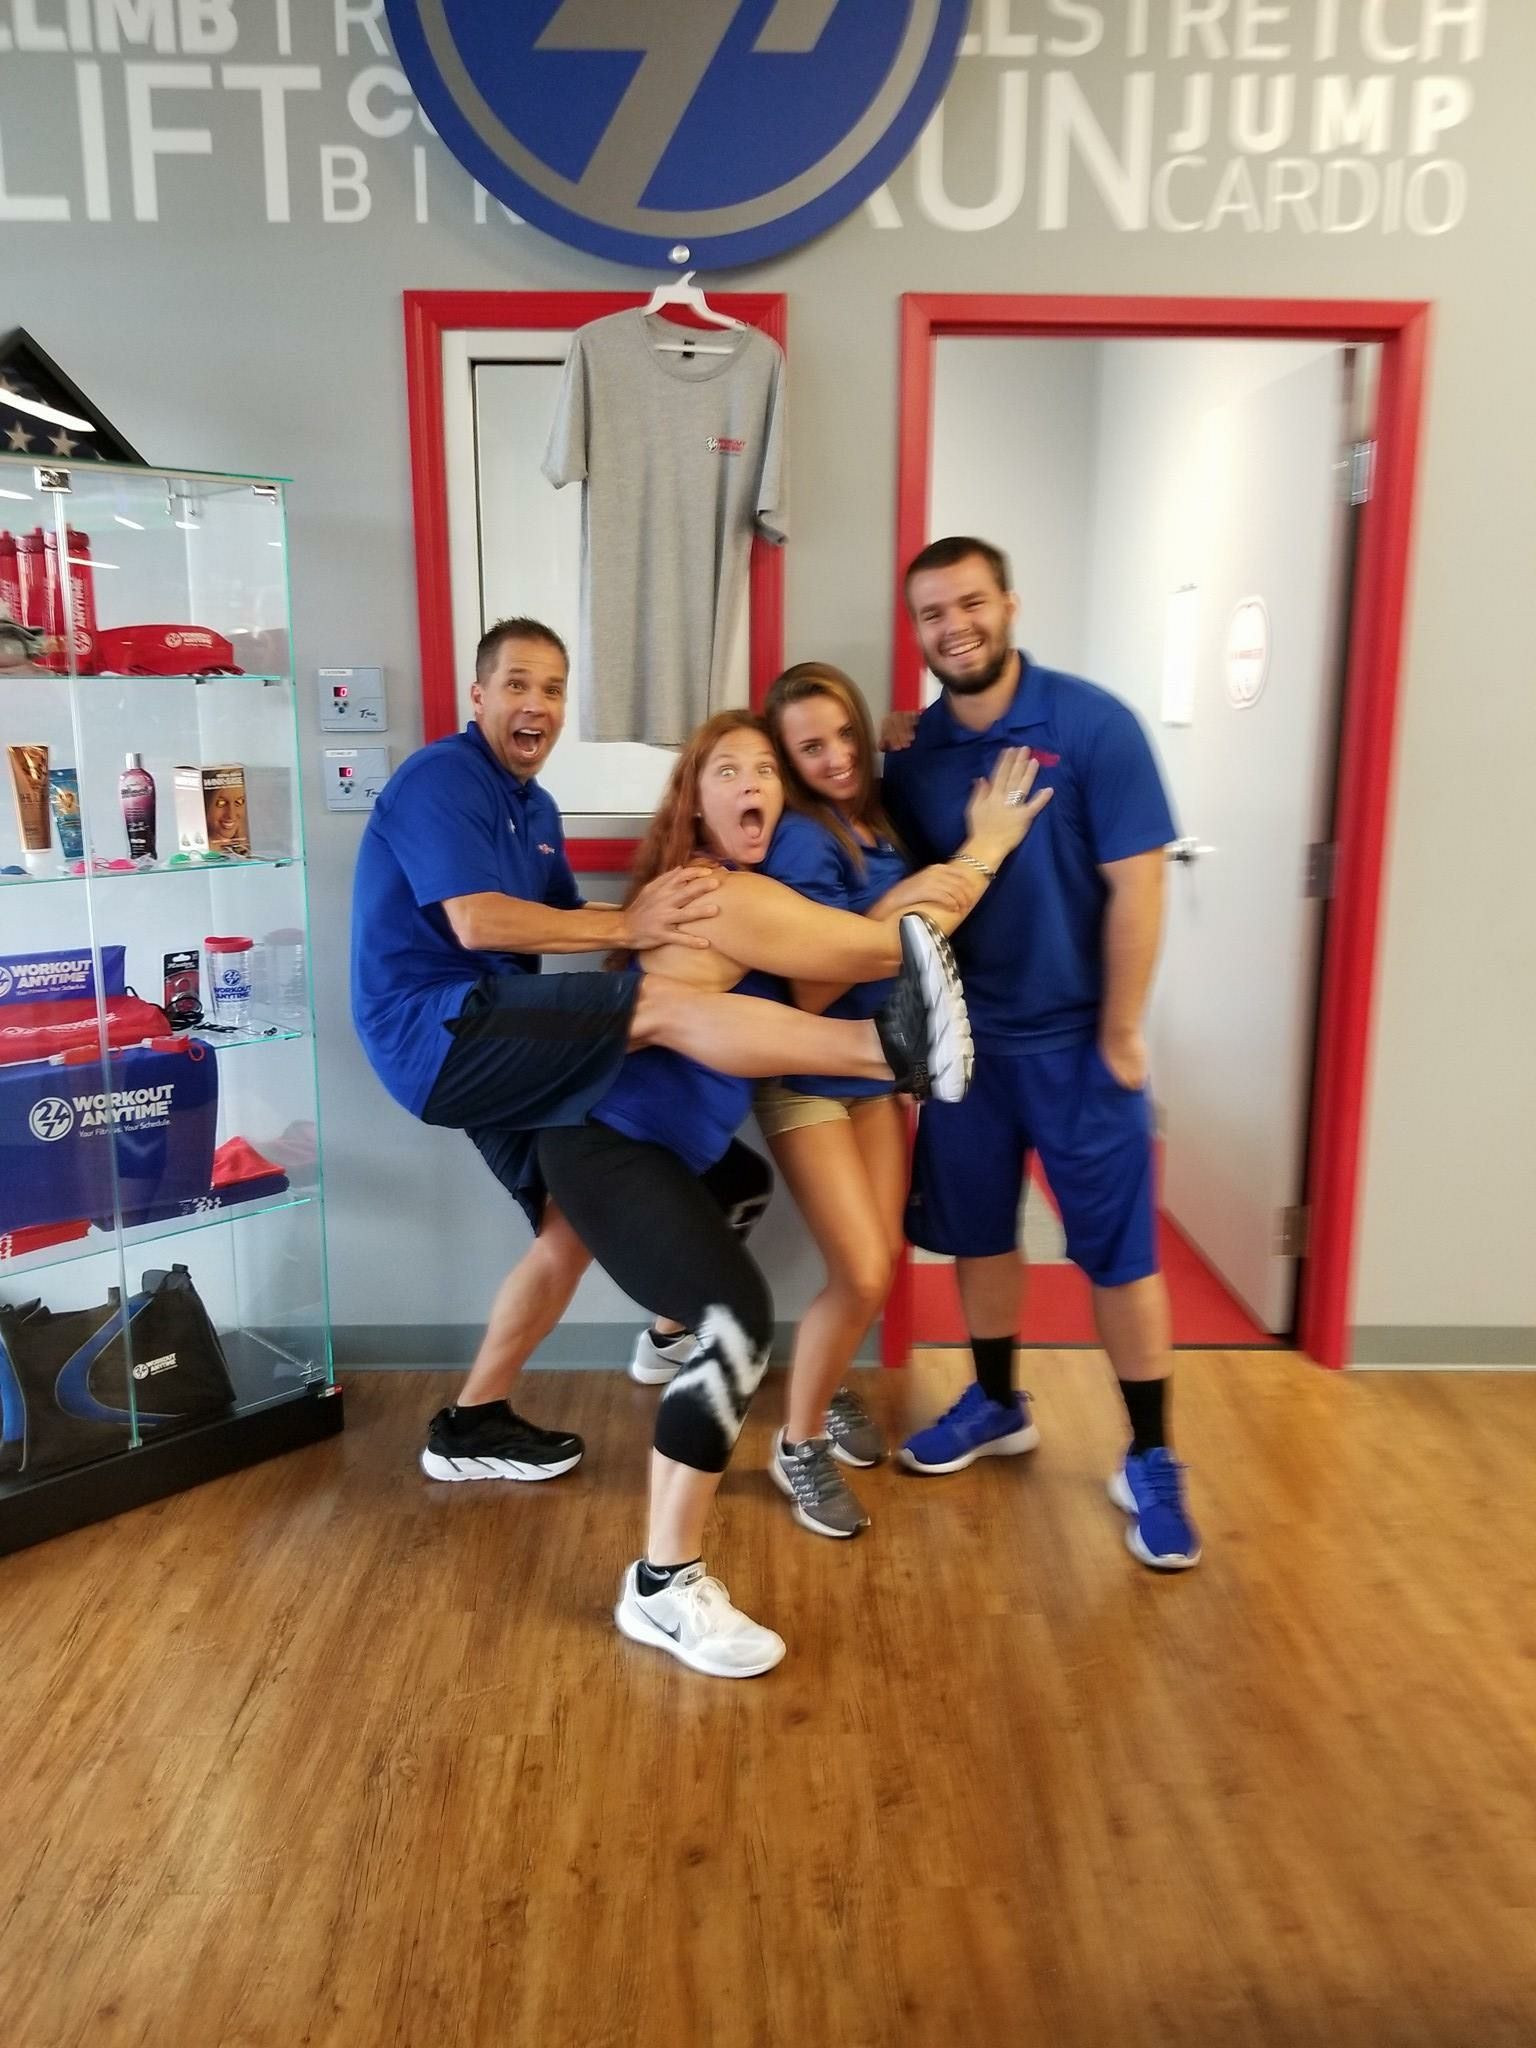 When You Re Ready To Love Every Minute You Are At The Gym We Re Here For You 24 7 Anytime Fitness Gym Cardio